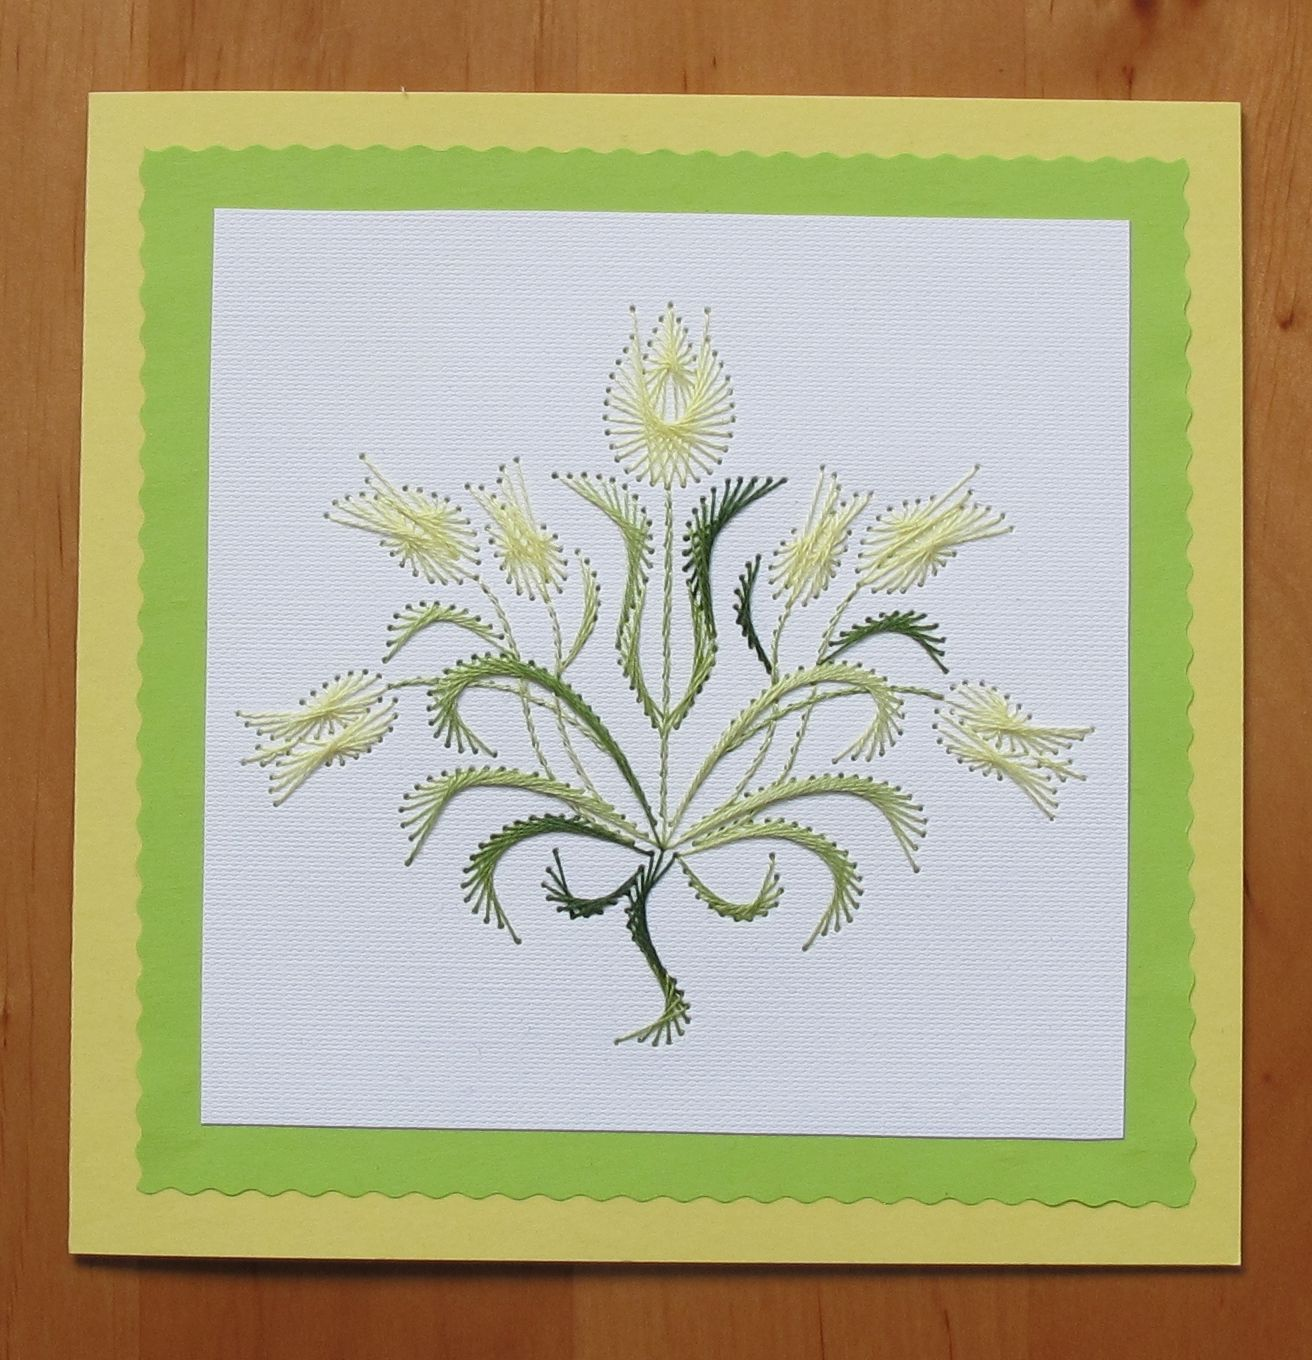 Pin by anna pilarska on my stiching cards pinterest sewing cards card card embroidery stitches paper embroidery paper cards hand stitching greeting cards cardmaking diy string art kristyandbryce Image collections